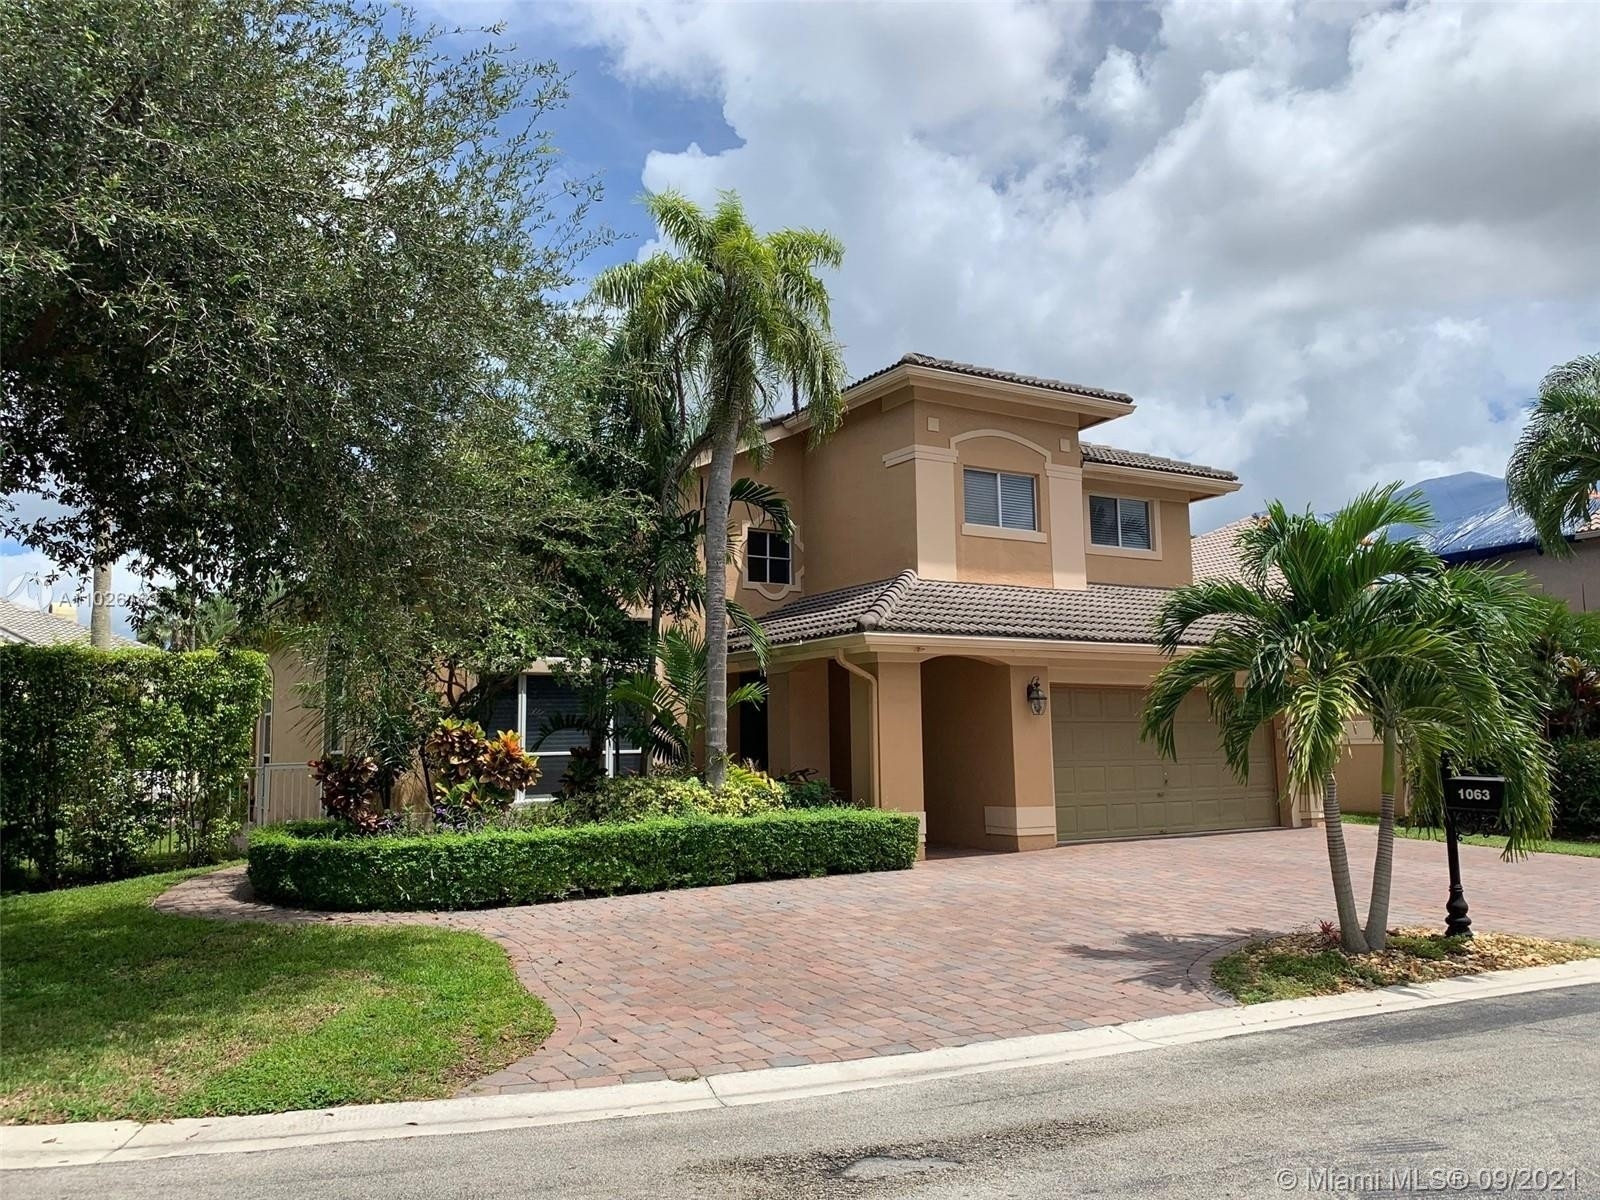 Single Family Home for Sale at Grand Palms, Pembroke Pines, FL 33027